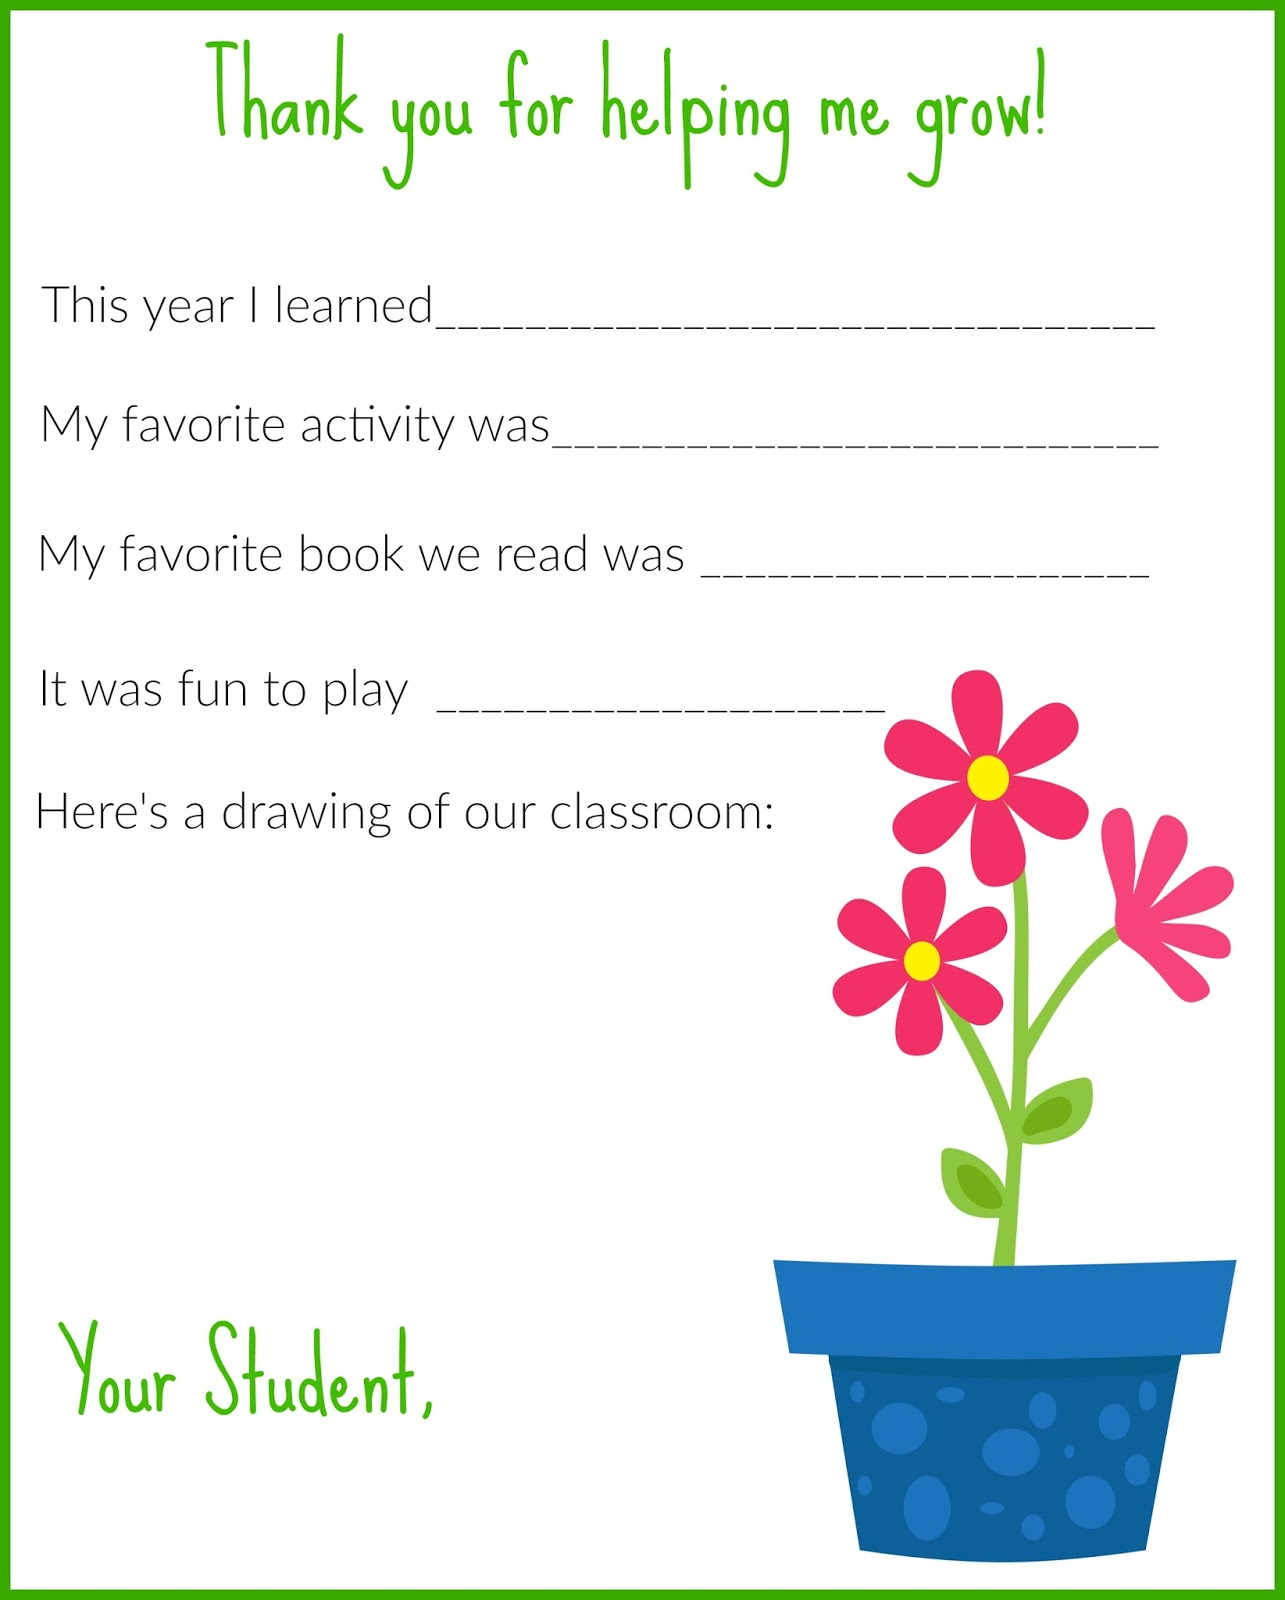 A Thank You Letter For Teachers {Free Printable} - The Chirping Moms - Free Printable Thank You Cards For Teachers